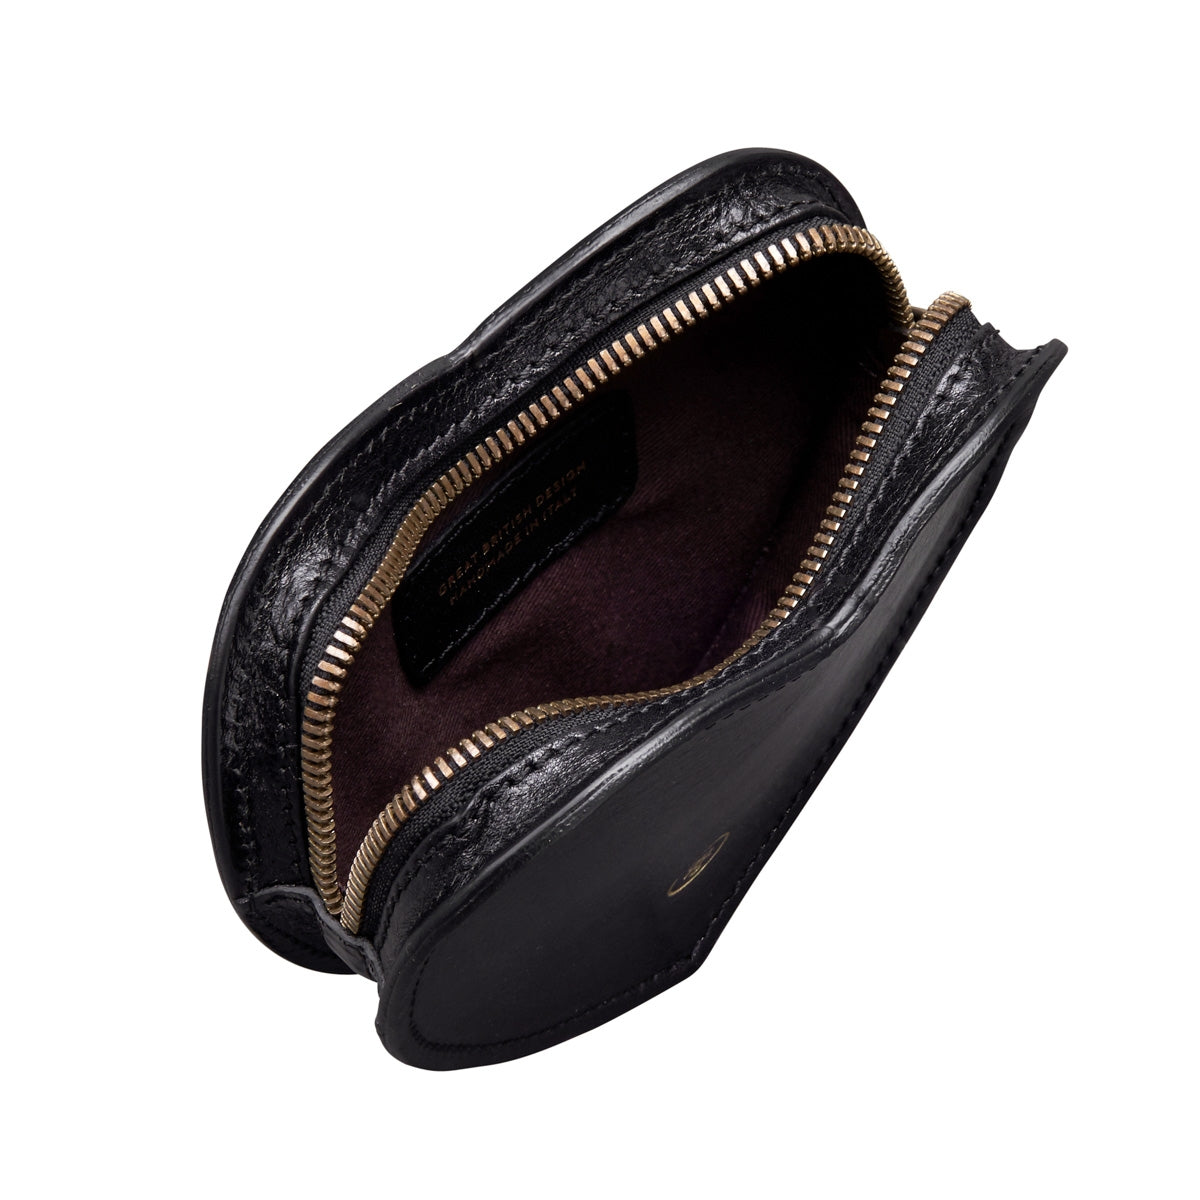 Image 5 of the 'MirabellaL' Black Leather Heart-shaped Handbag Organiser